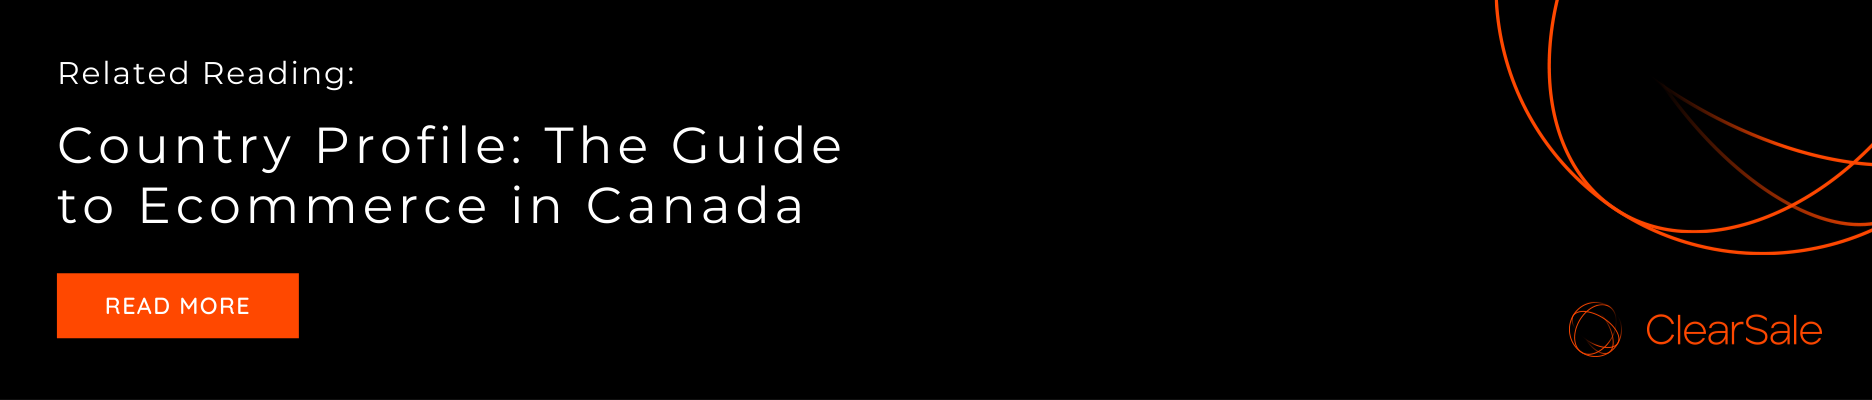 Country Profile: The Guide to E-Commerce in Canada